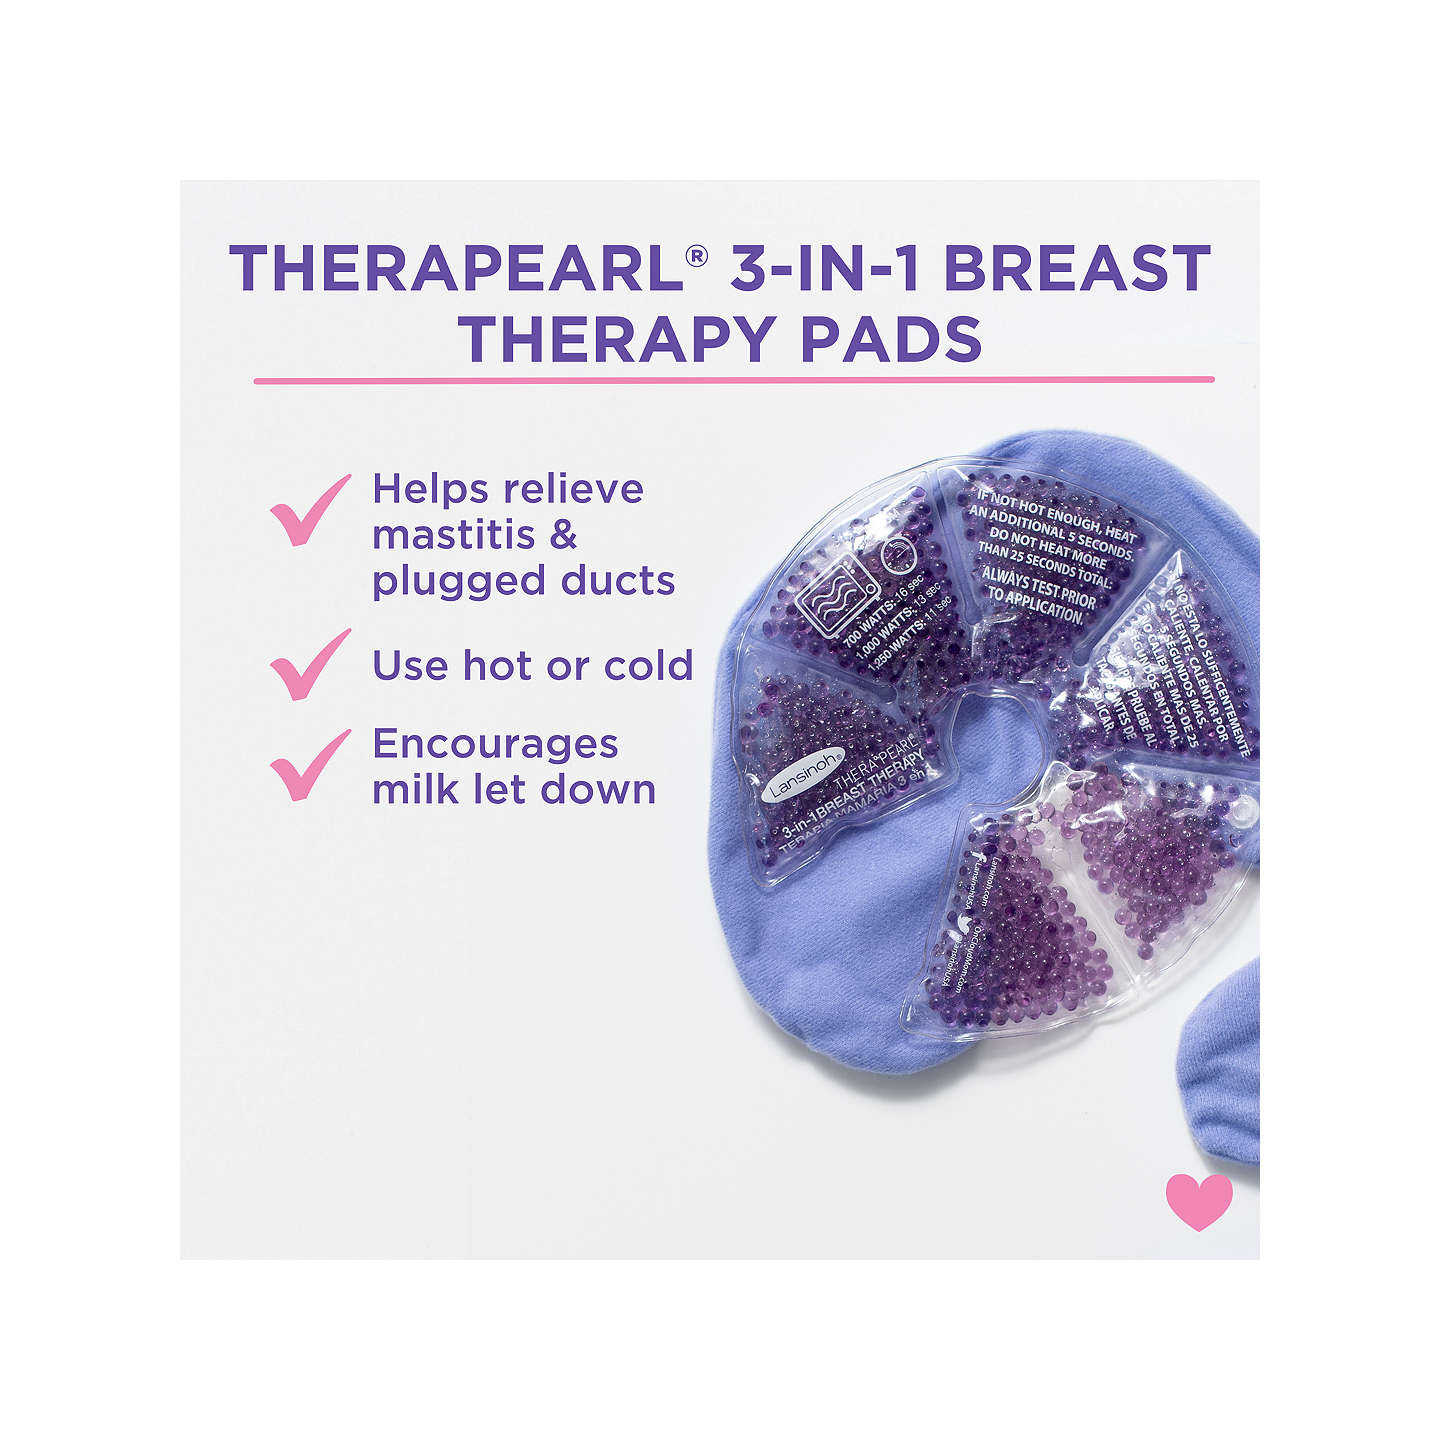 BuyLansinoh Therapearl 3-in-1 Breast Therapy Pack Online at johnlewis.com